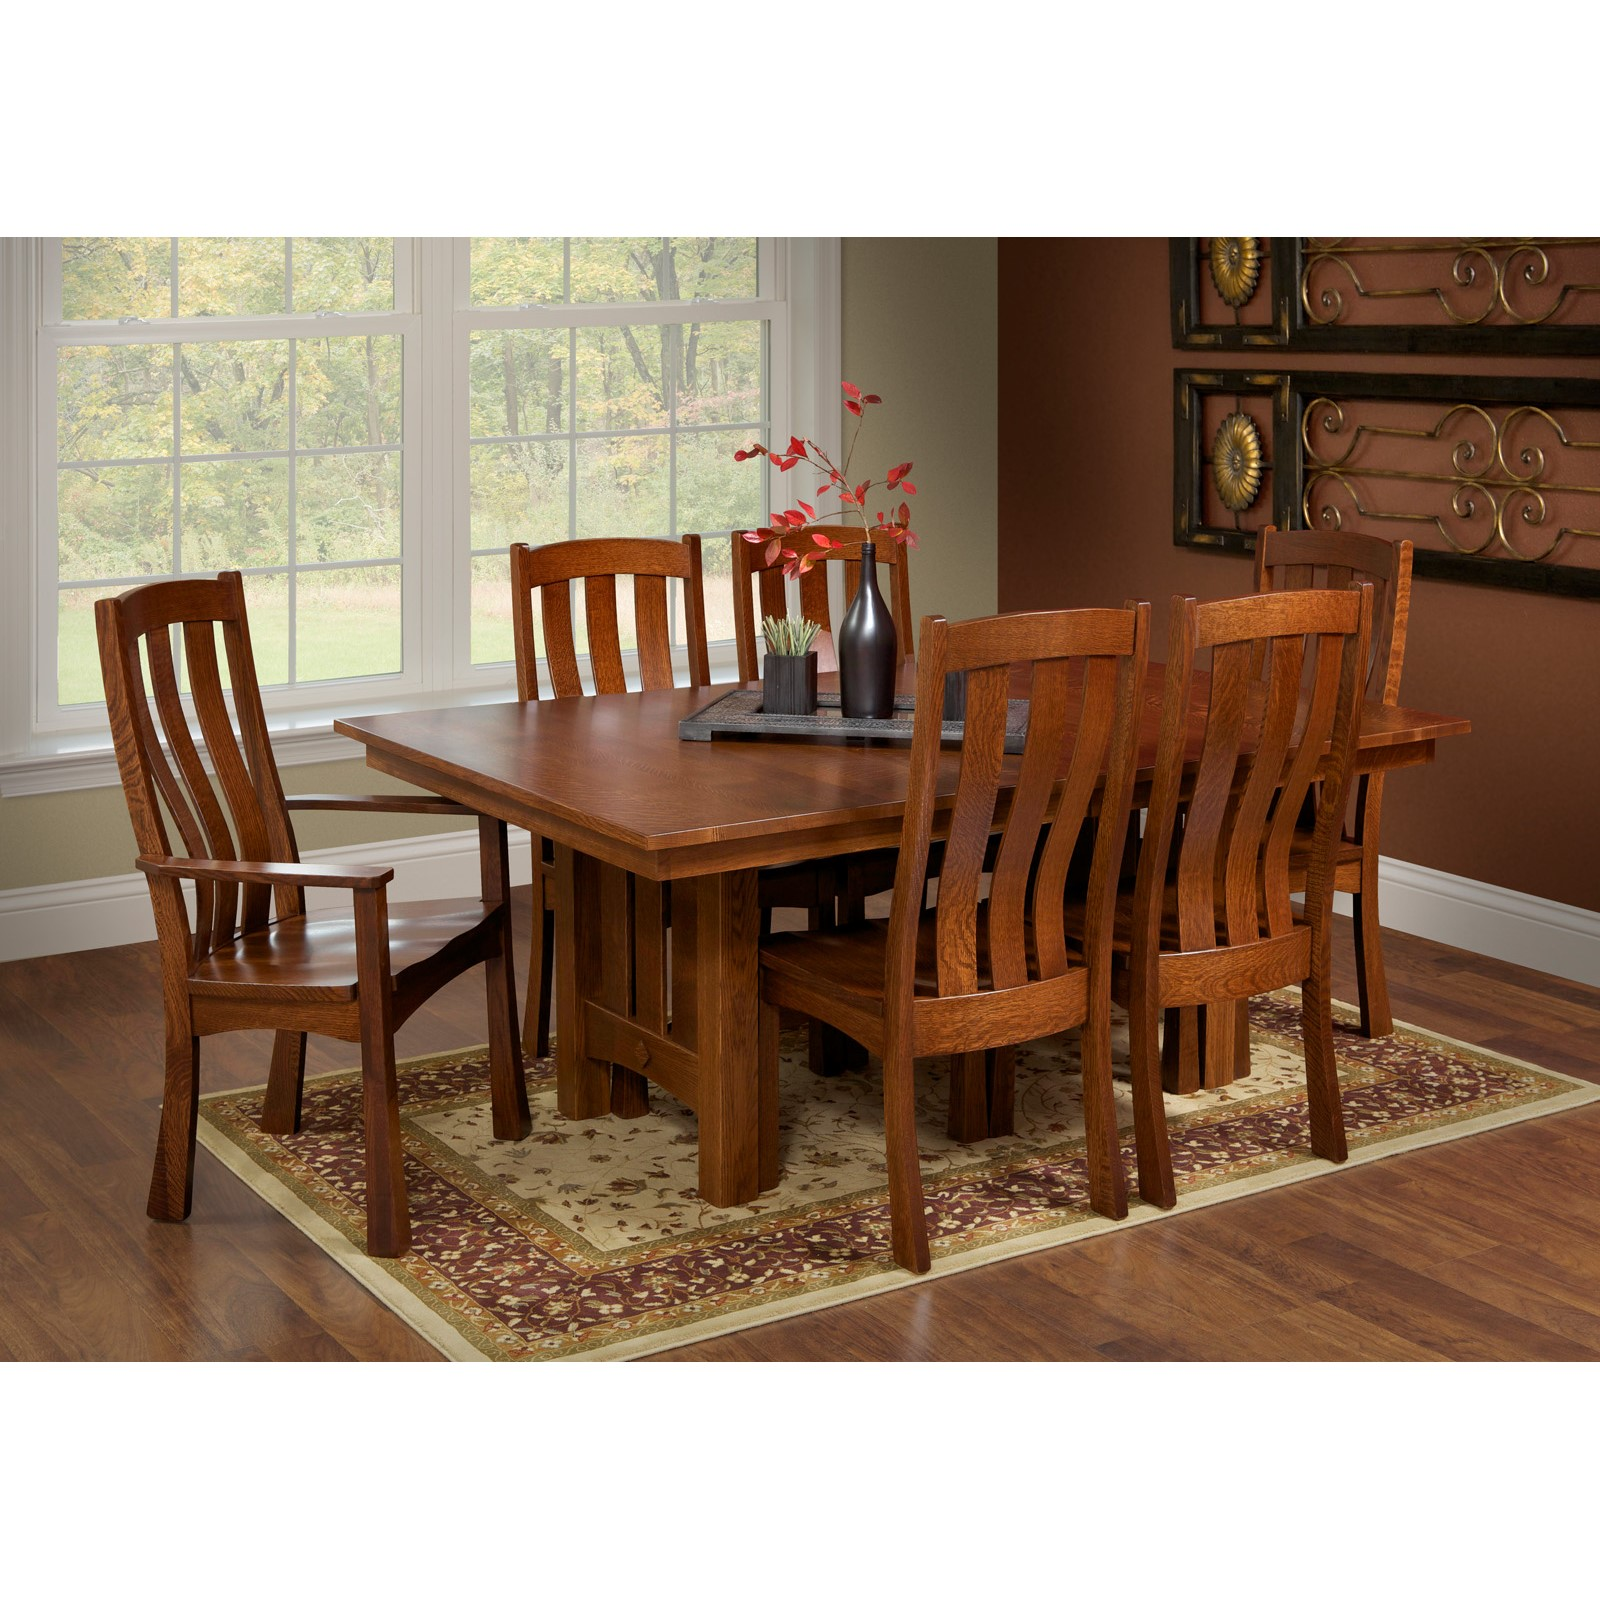 7 pc dining room set kingston 7 pc wood dining room set dining room sets dining 7 pc dining - Pc dining room set ...